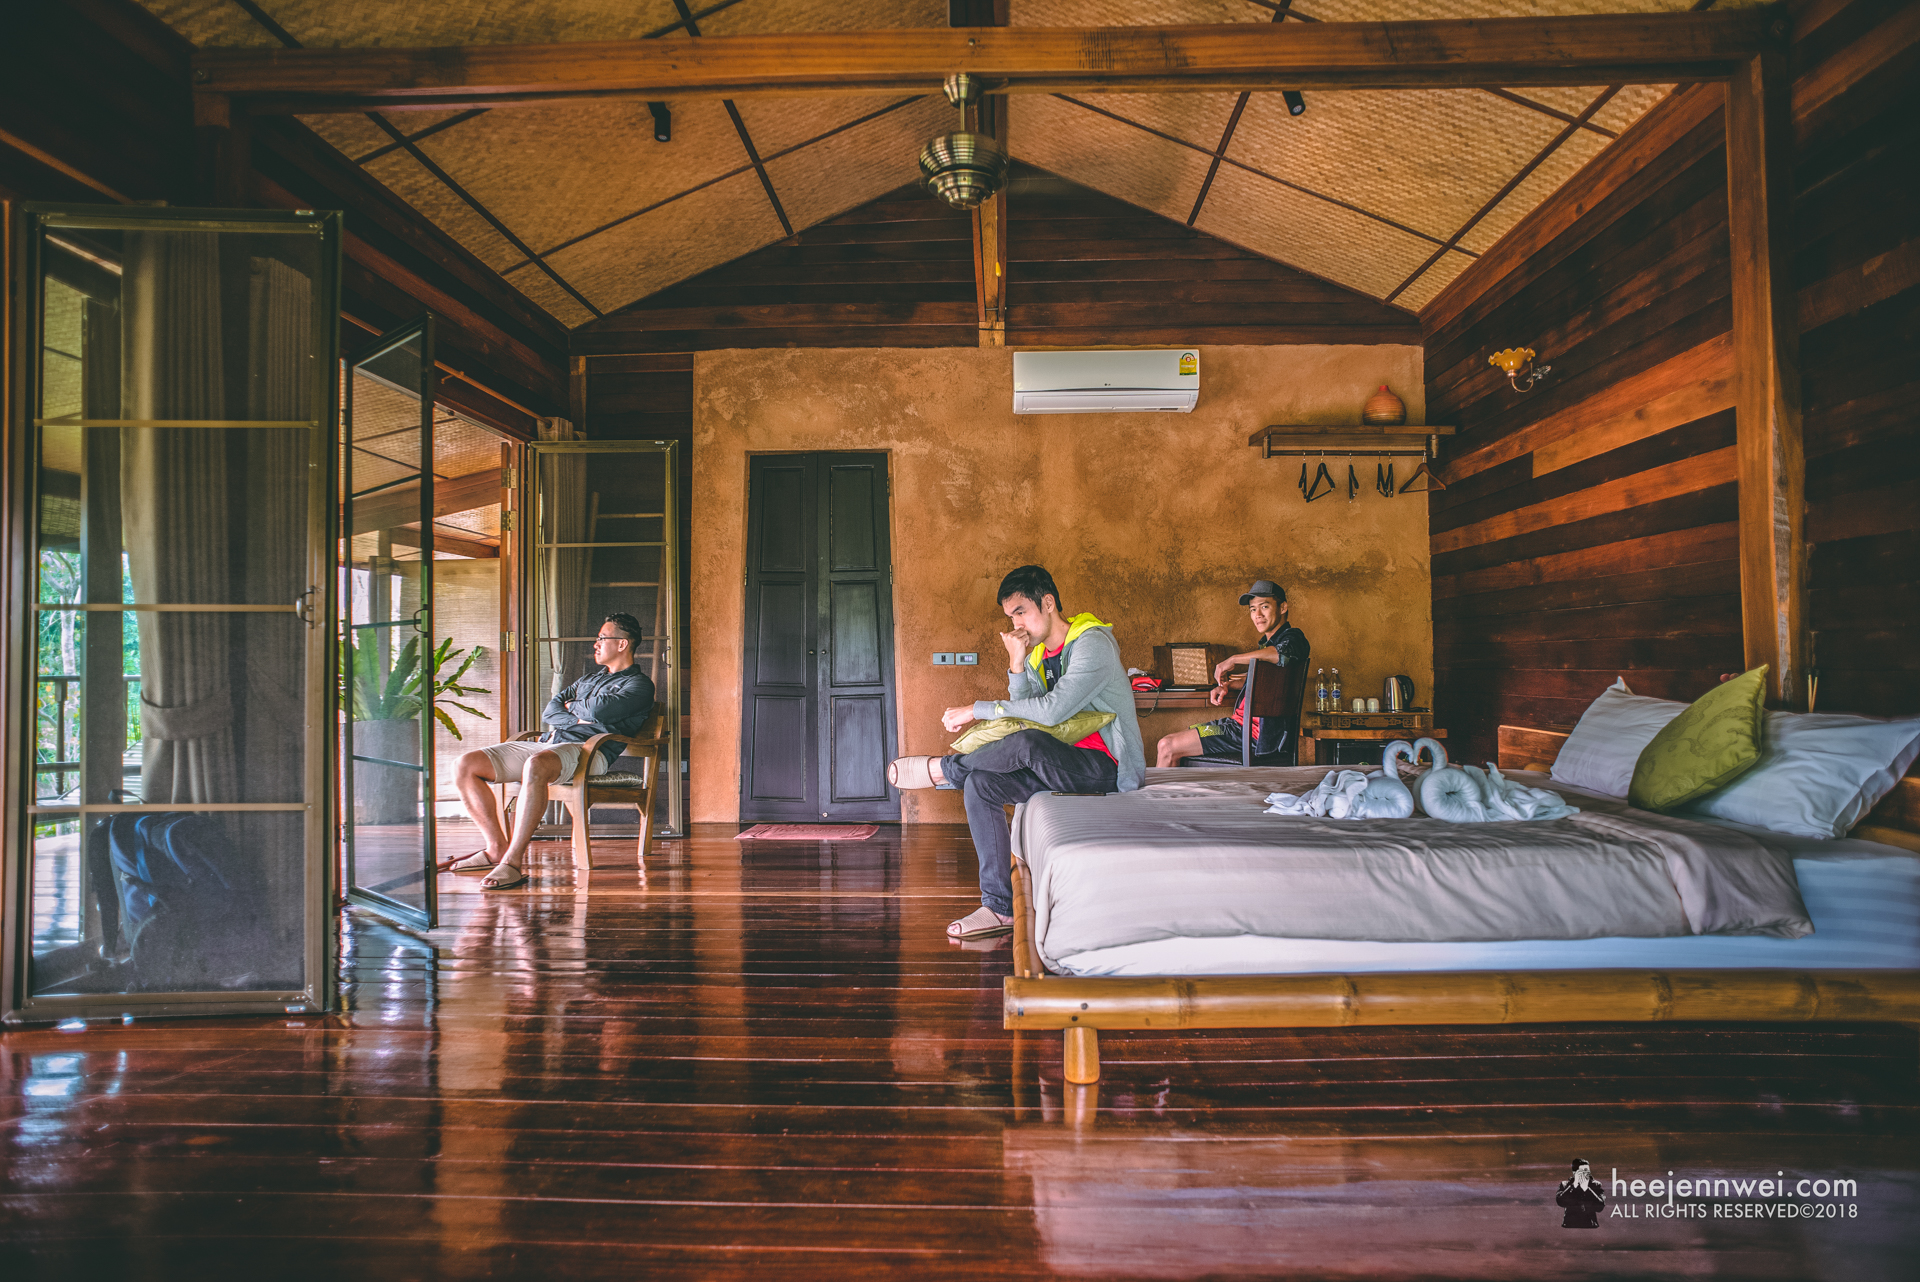 Beautiful spotless luxury wooden loft with amazing garden, nice and friendly hosts! They are always there to help, even if it's a booking to the massage or its a cup of good coffee. I would strongly recommend the place! We loved the location as it was peaceful and quiet.